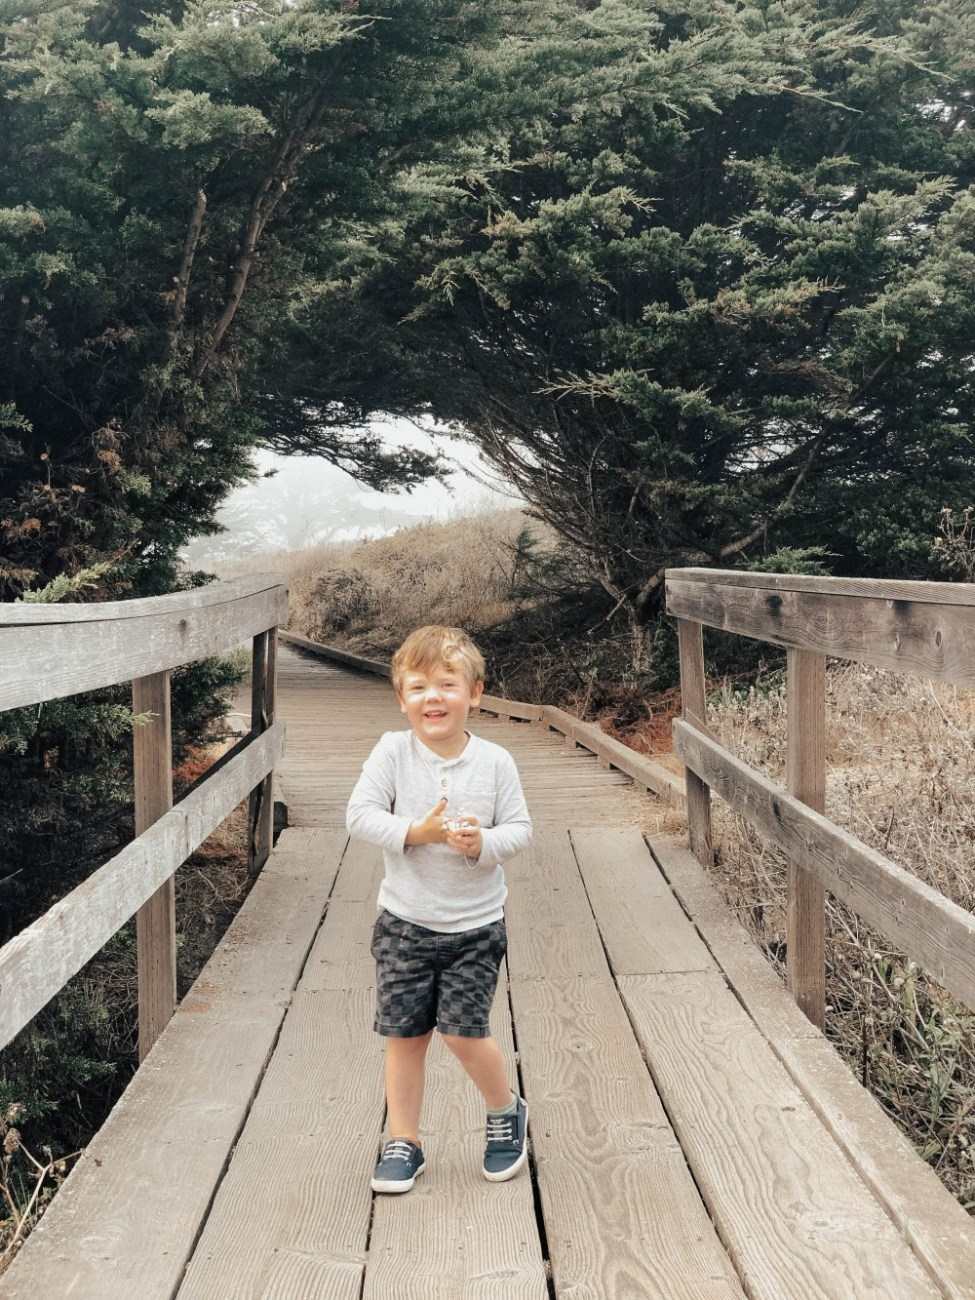 California coastal getaway to Oceanpoint Ranch in Cambria. #familytravel #covidtravel #coastalgetaway